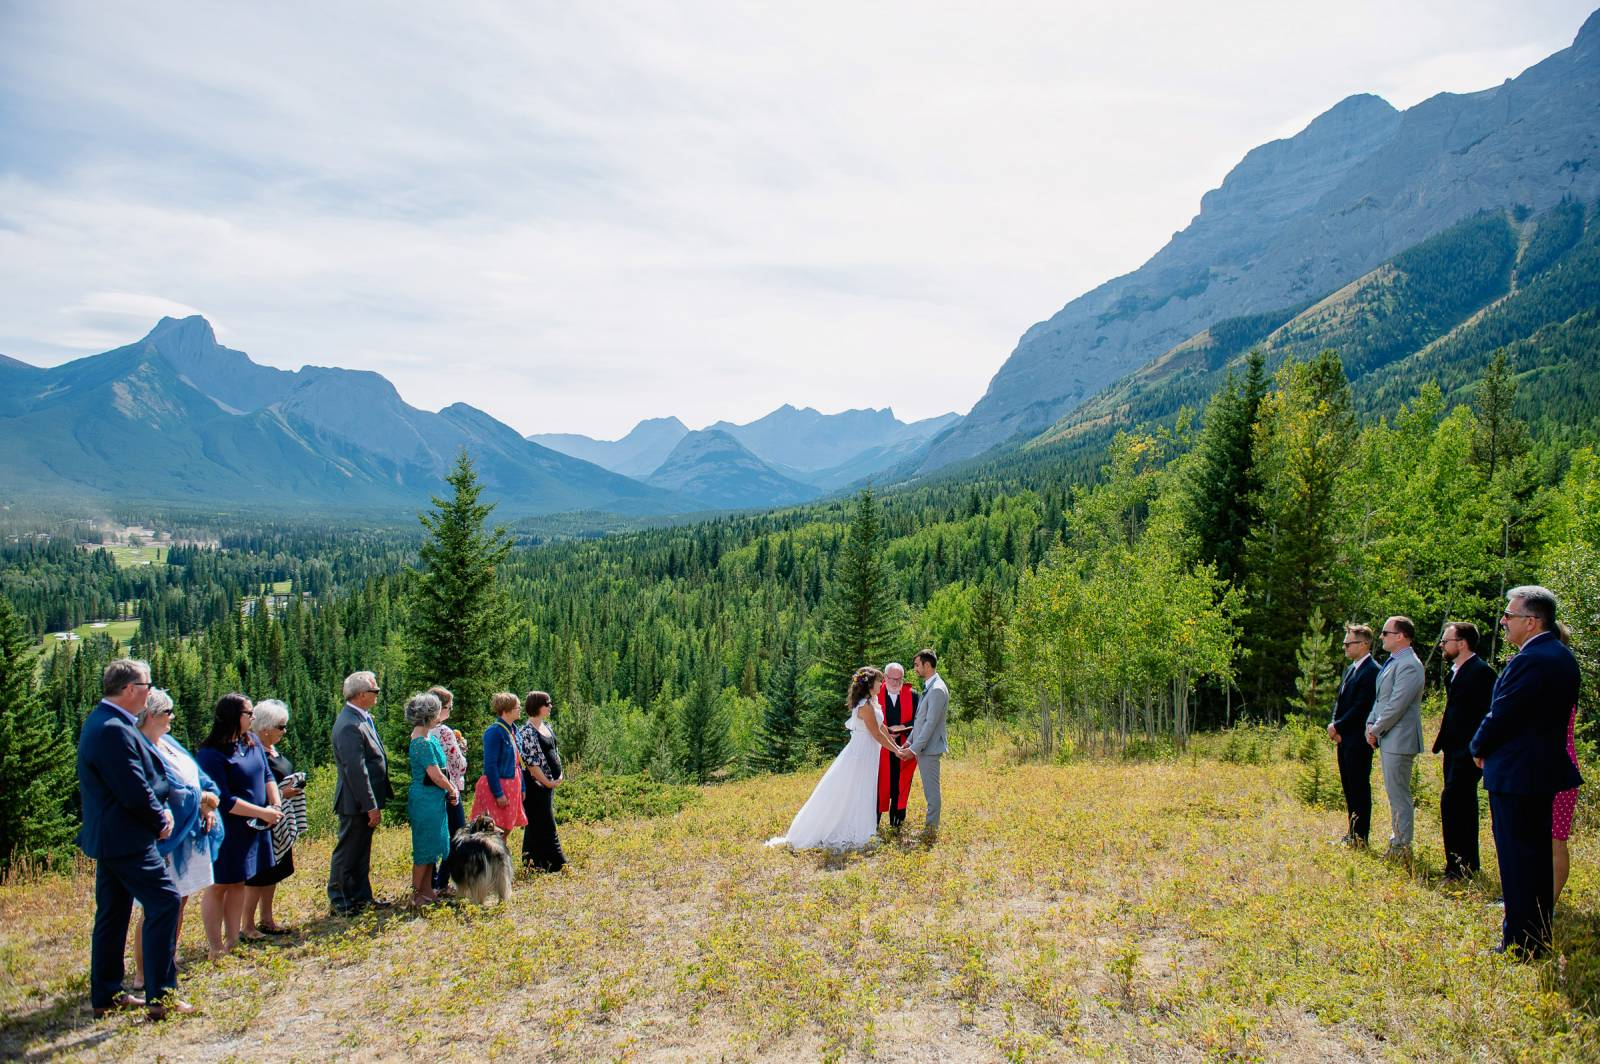 Kananaskis Viewpoint Wedding Ceremony With Reception At